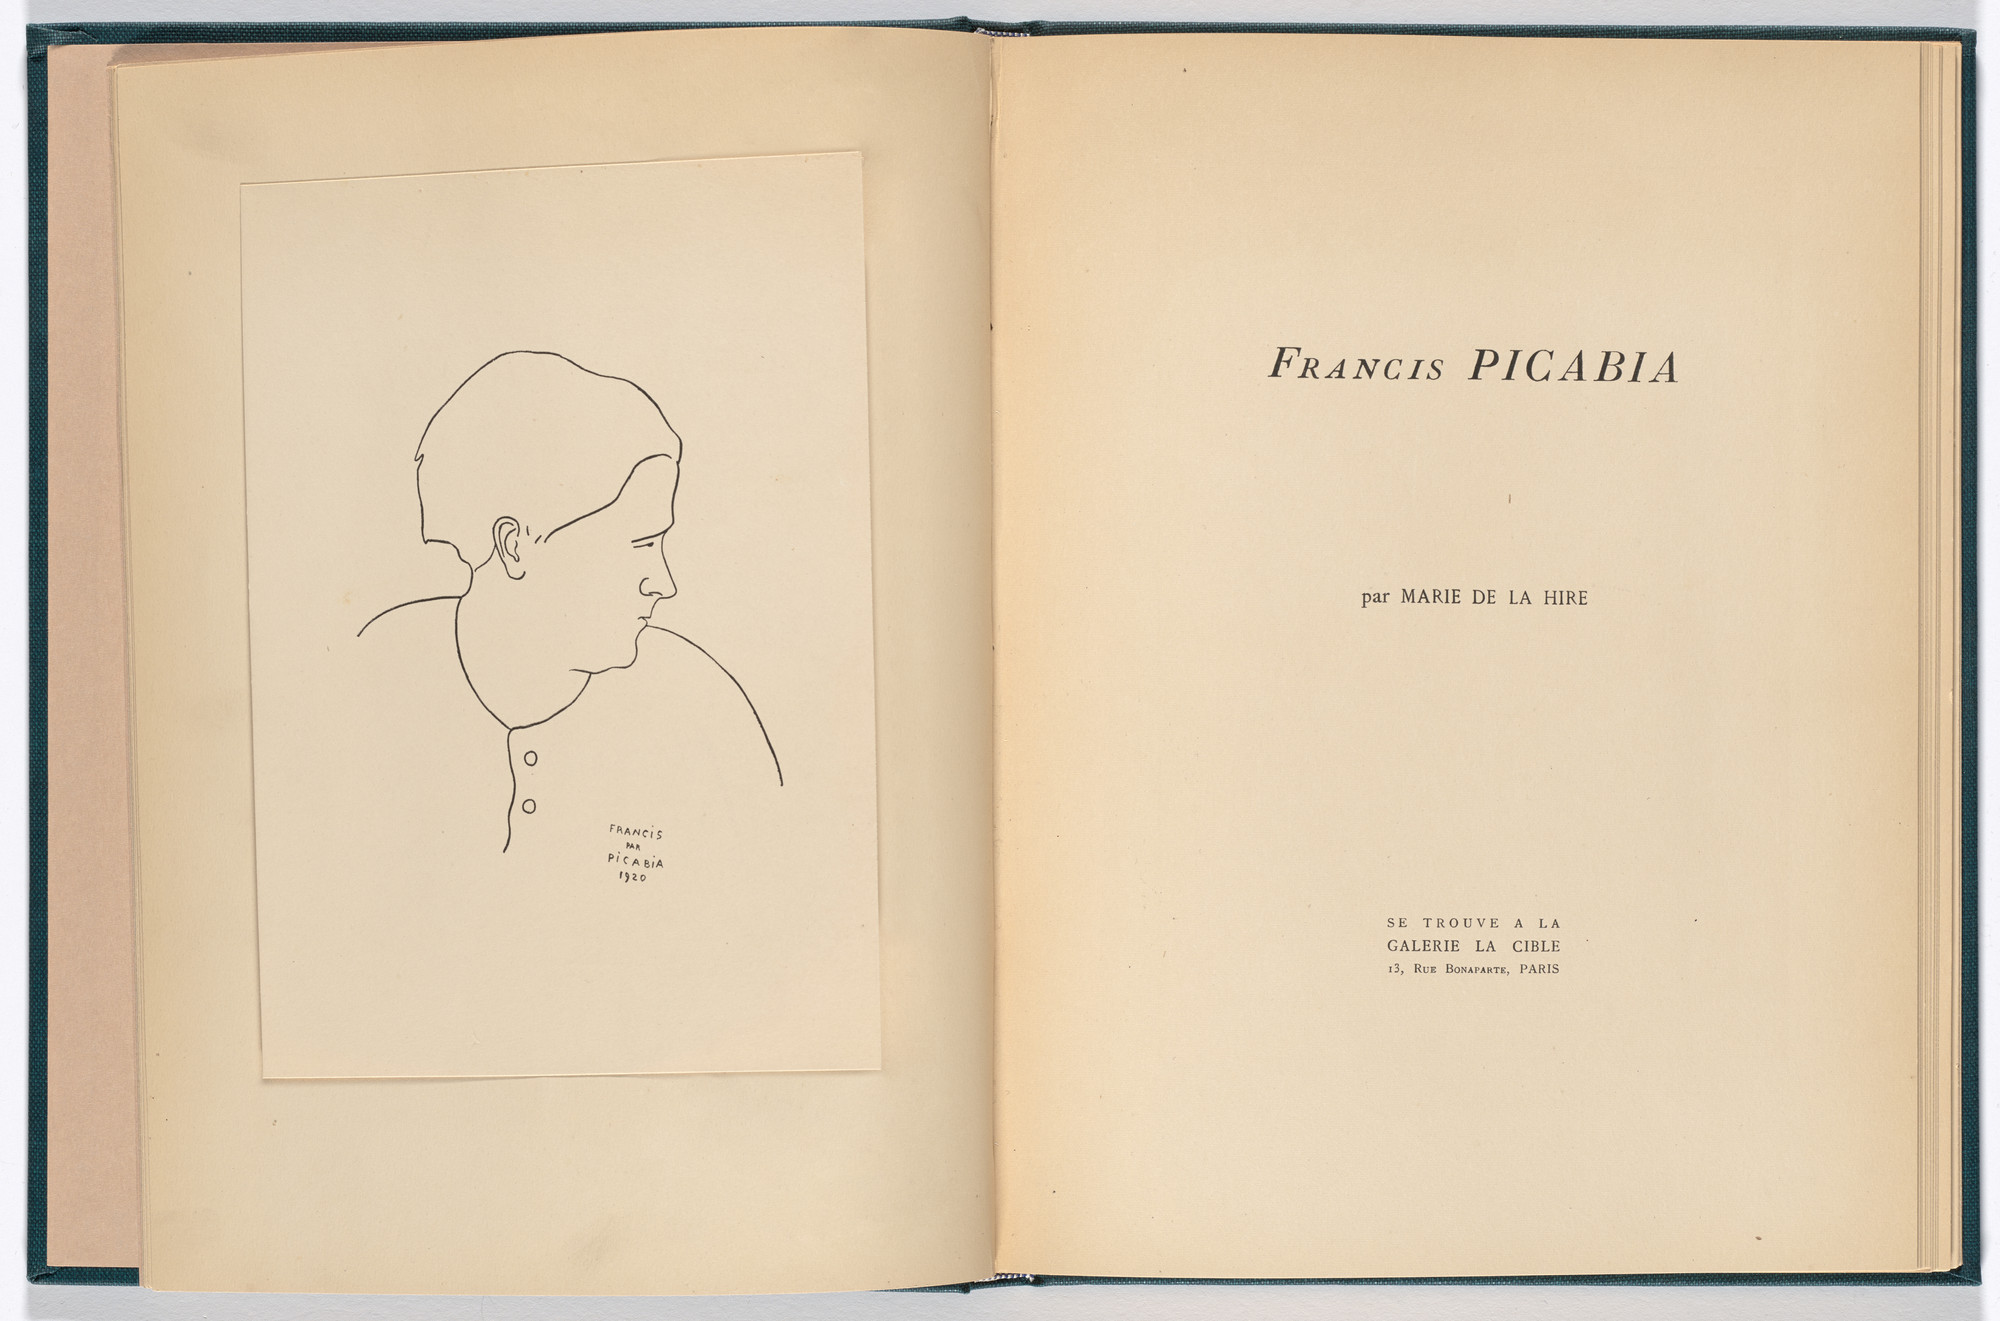 Francis Picabia. Reproduction of Francis par Picabia 1920 (frontispiece) from Monographie Francis Picabia (Francis Picabia Monograph). 1920